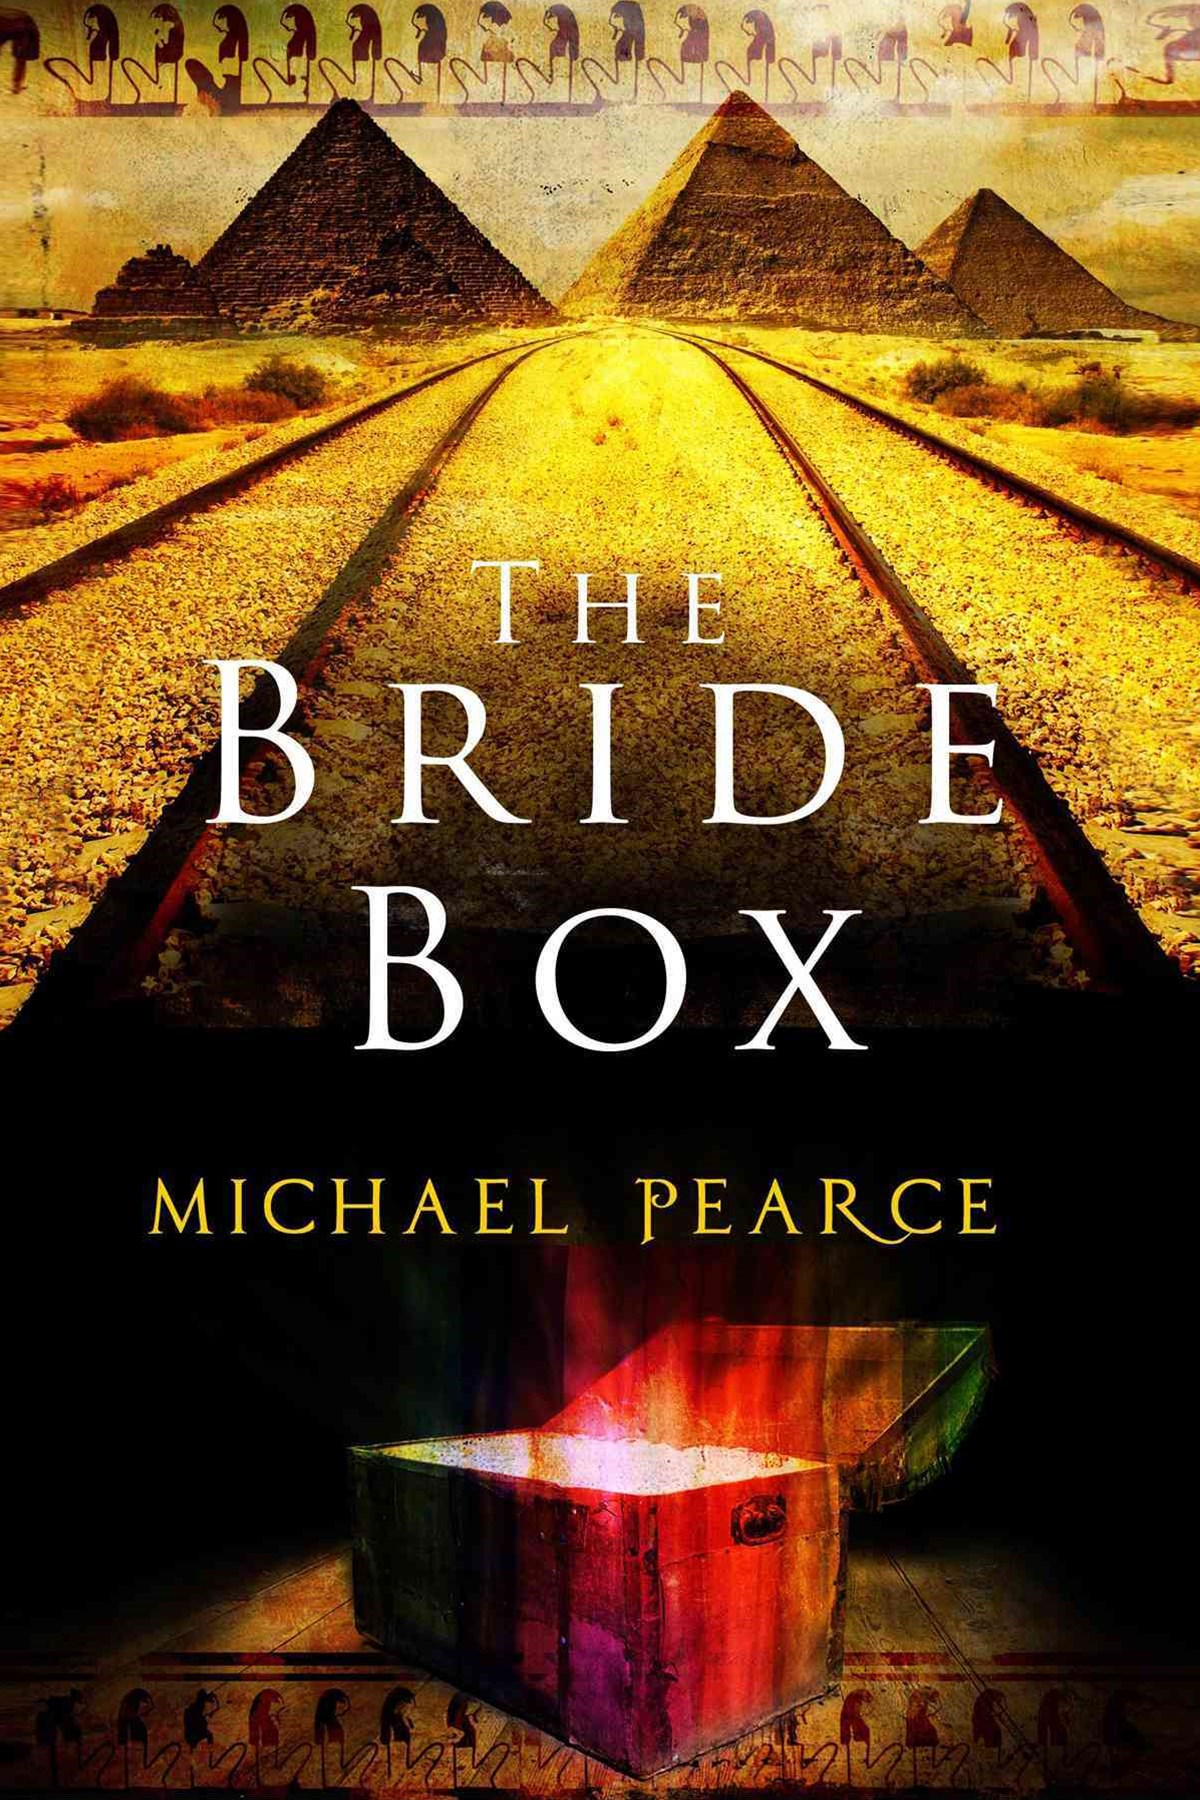 The Bride Box